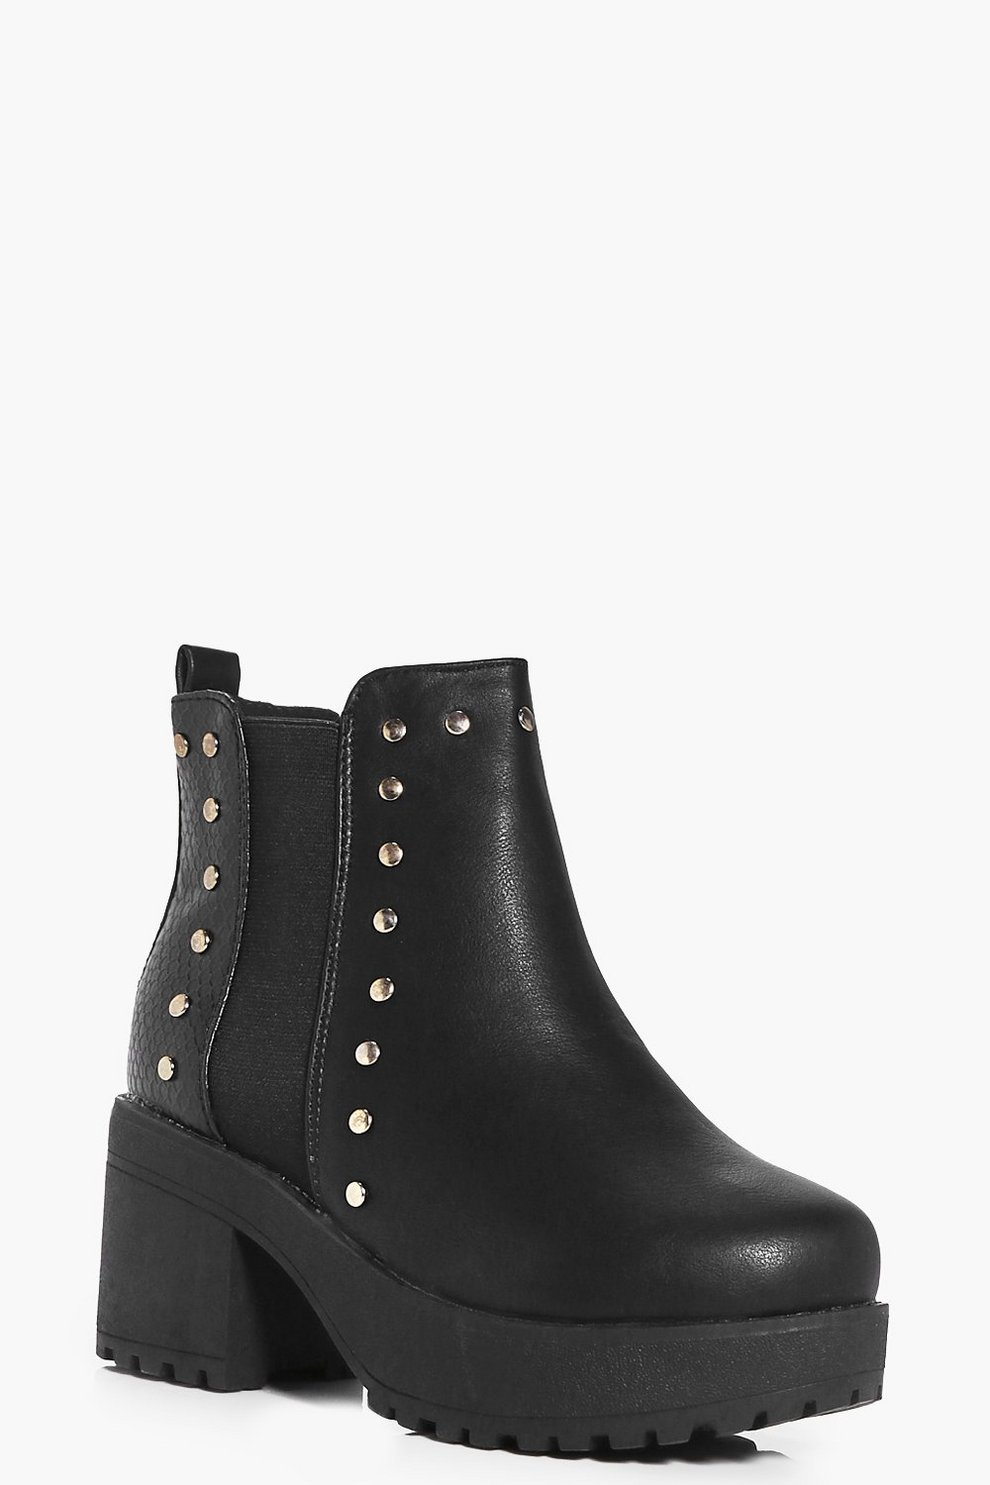 bc3f4457b383 Girls Studded Chunky Chelsea Boots